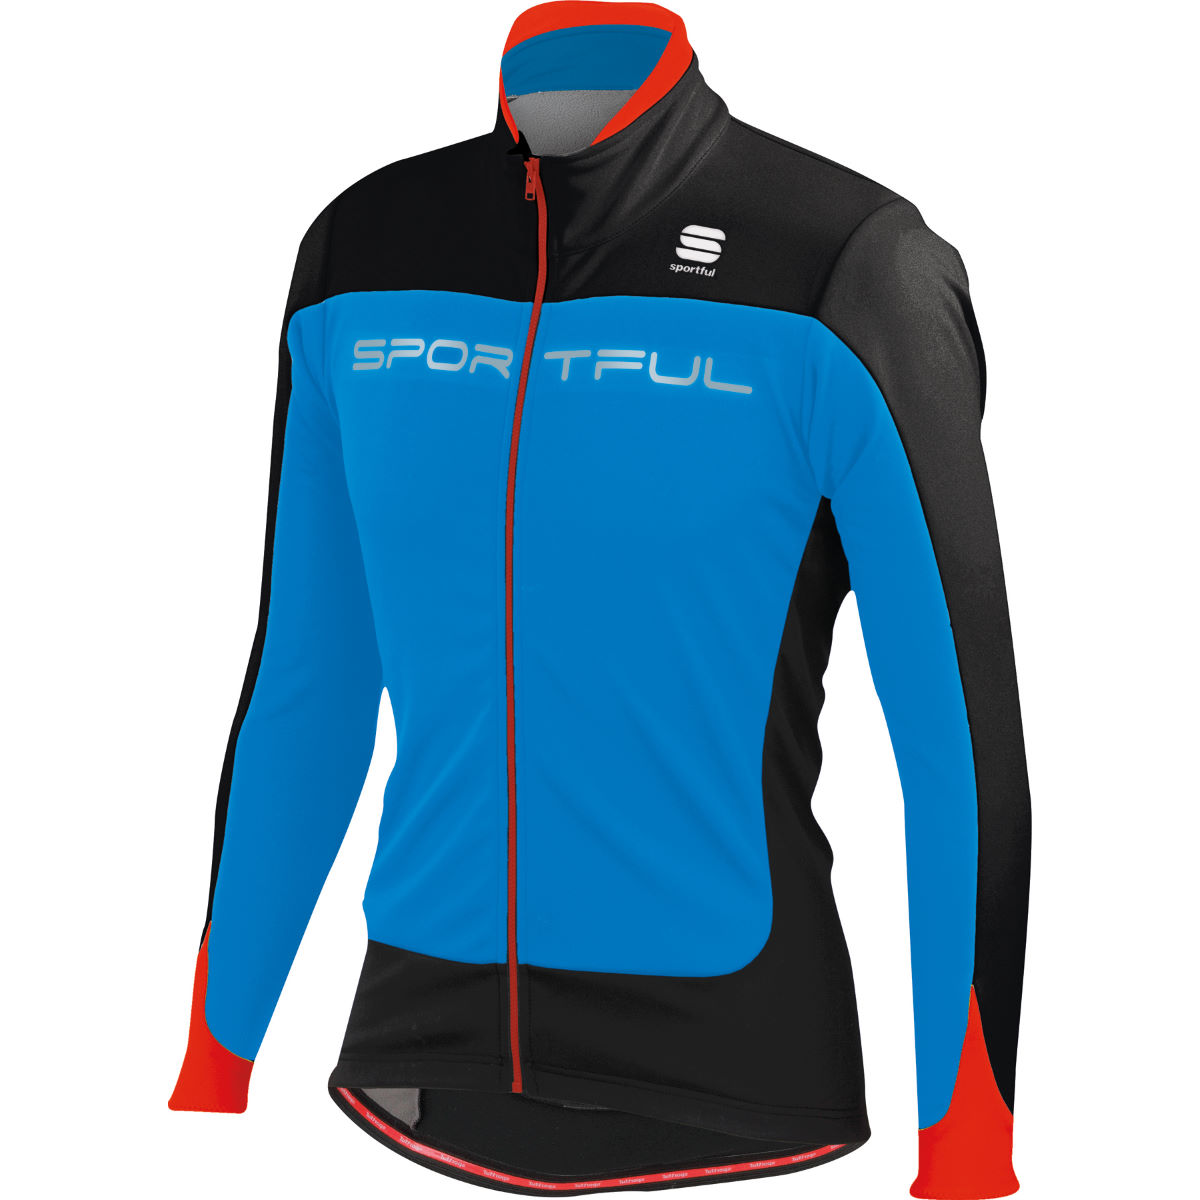 Veste Sportful Flash Softshell - XS Blue/Black/Red Coupe-vents vélo